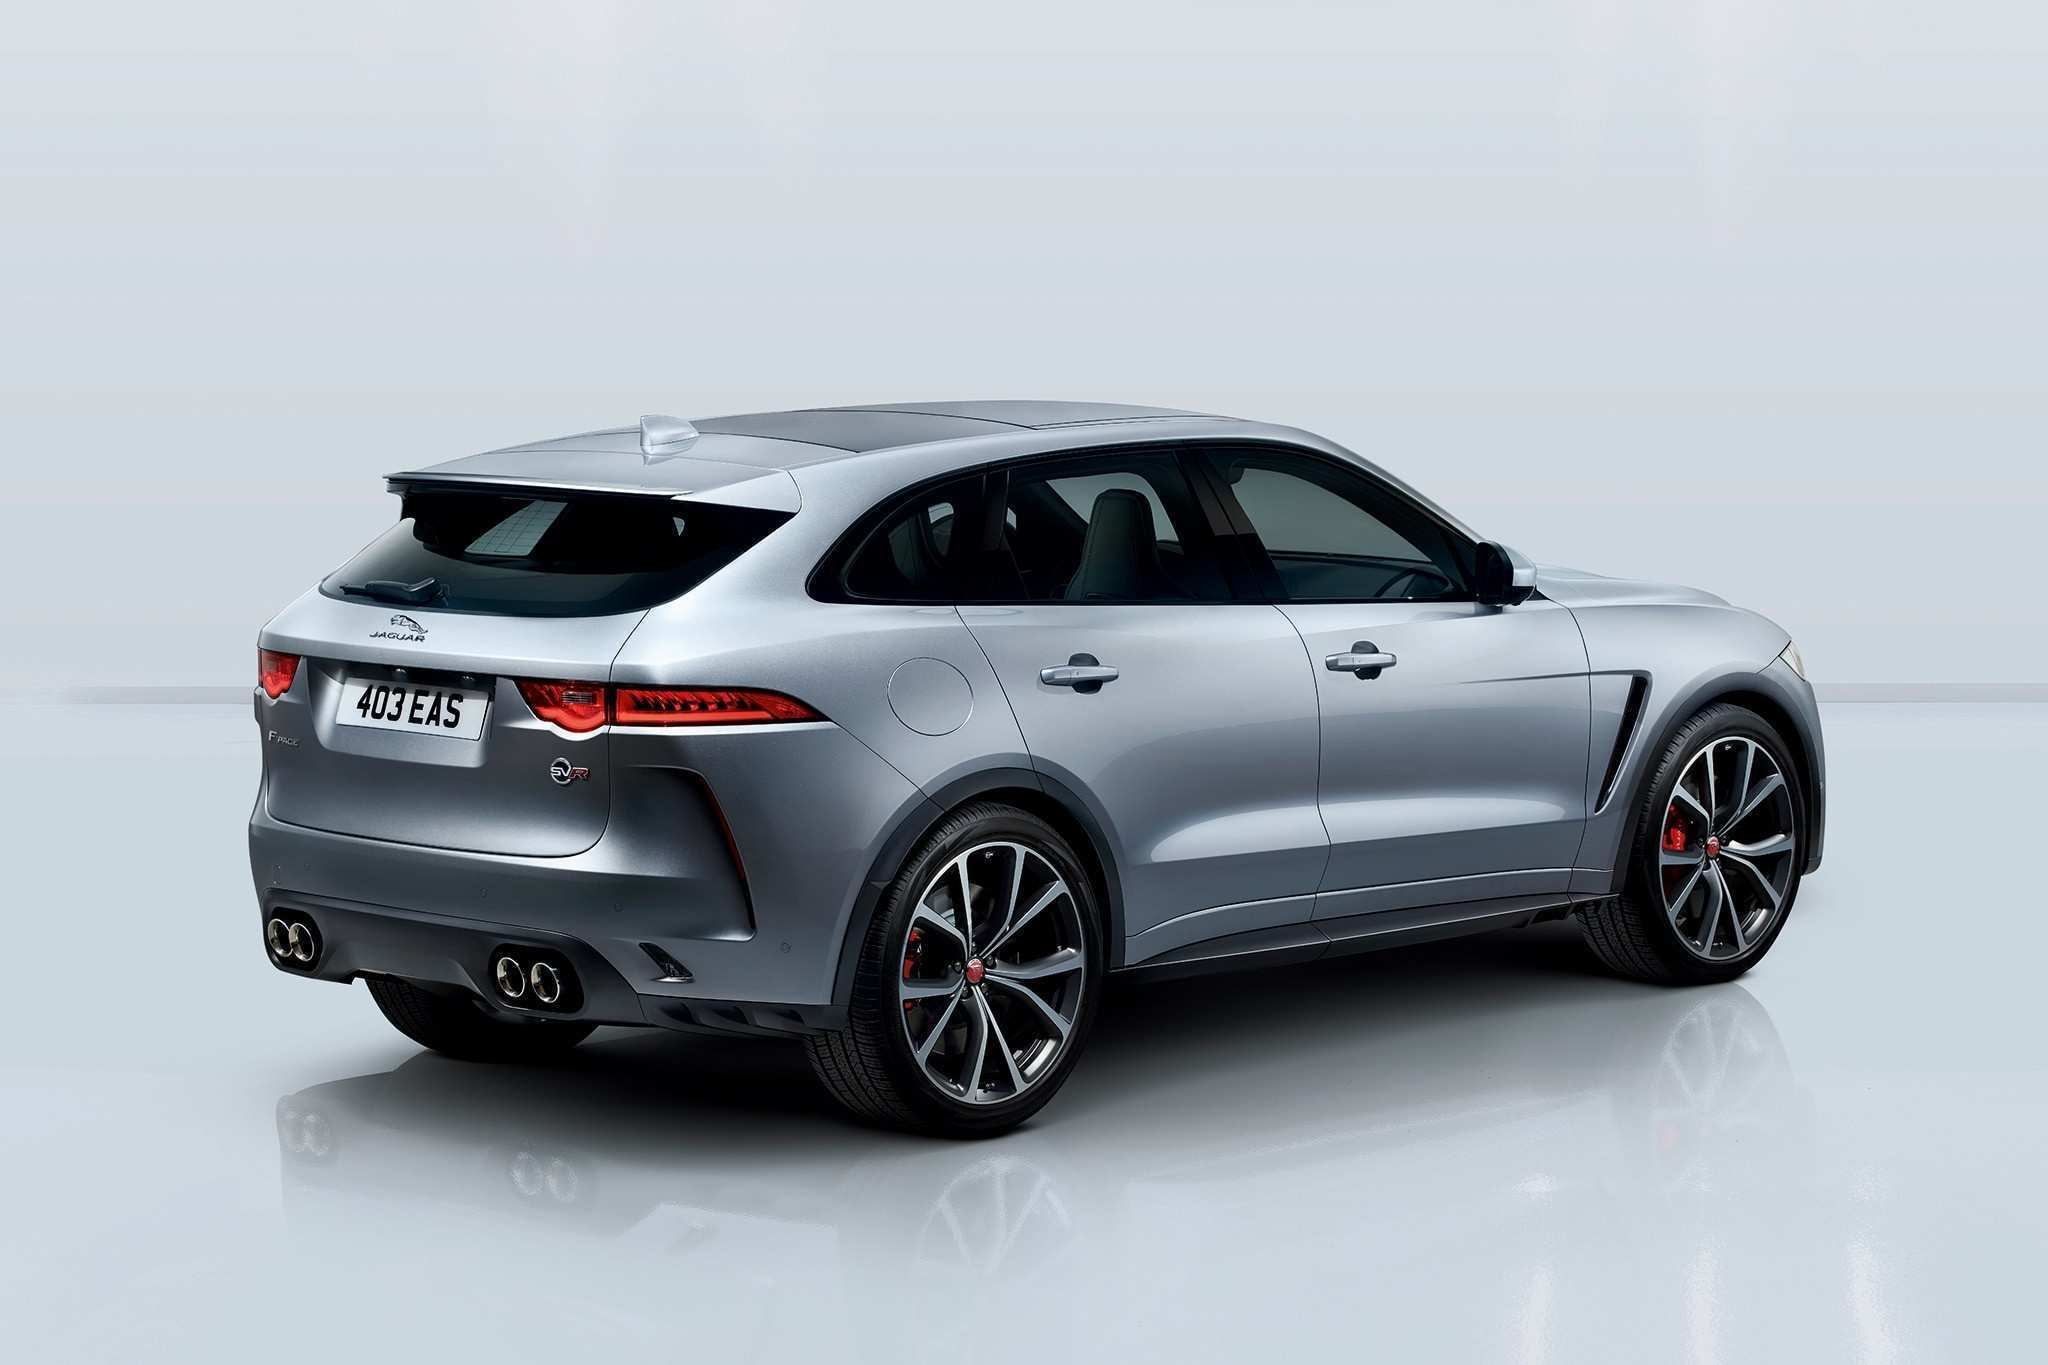 80 Gallery of 2020 Jaguar F Pace Svr Exterior Prices with 2020 Jaguar F Pace Svr Exterior